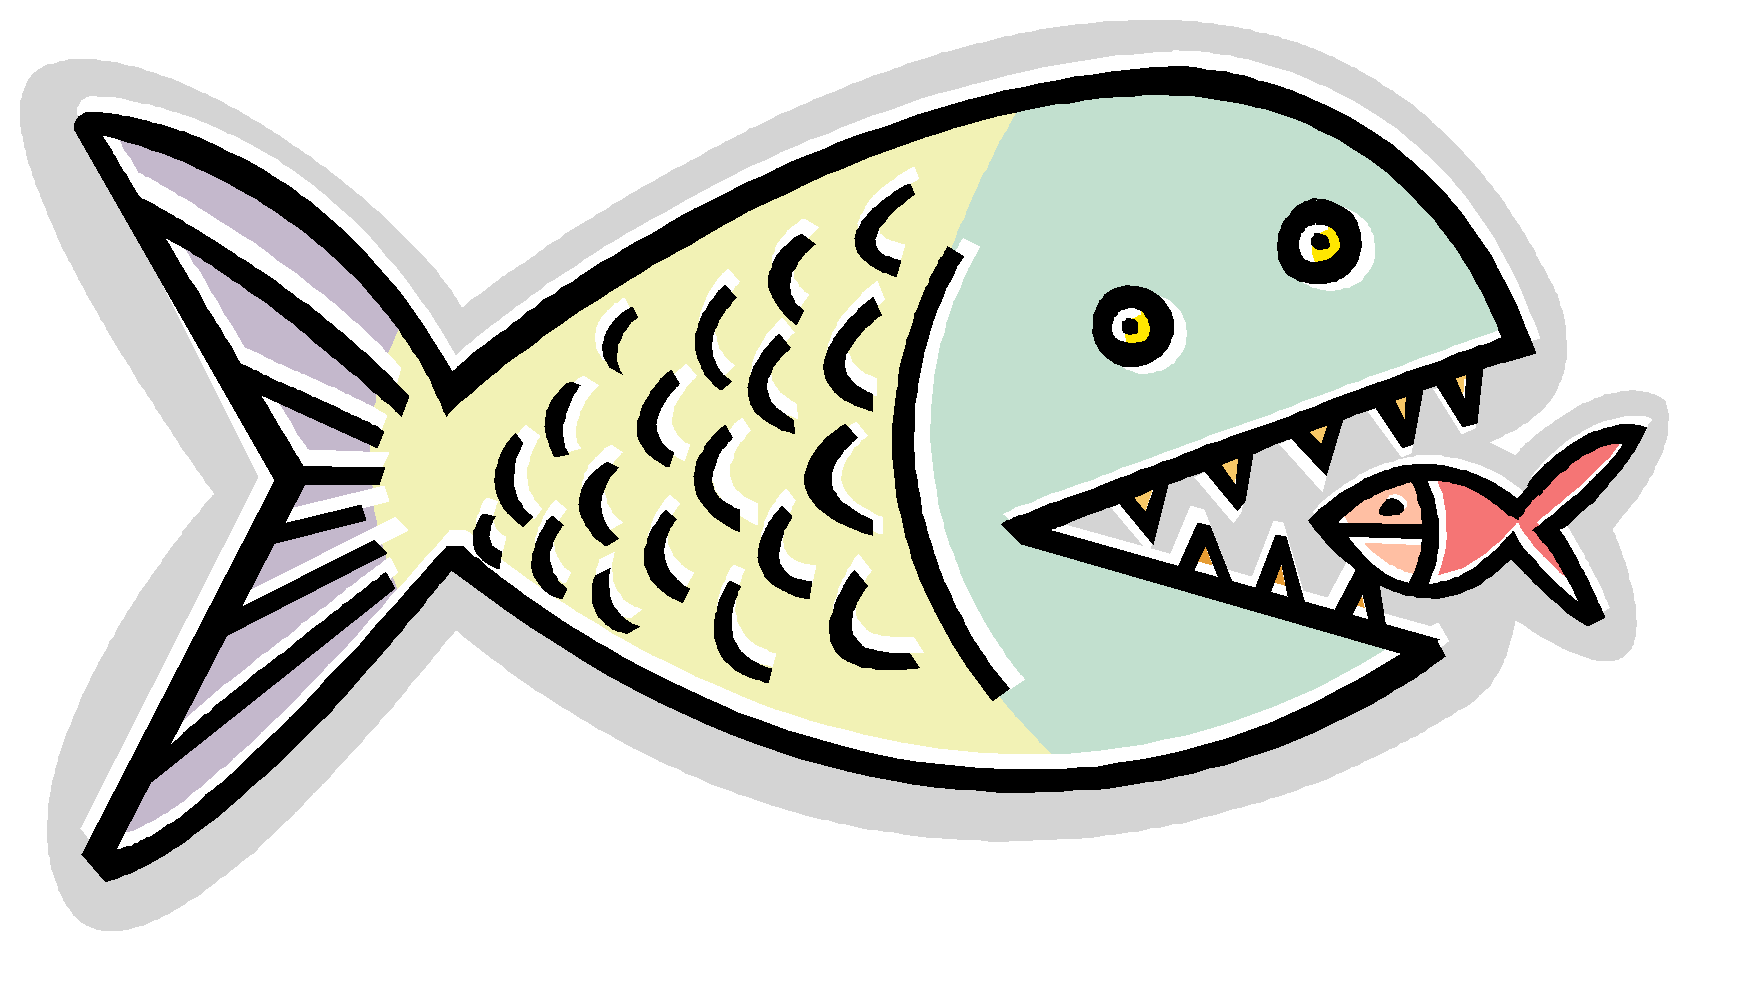 Fish fillet clipart image download Collection of 14 free Hemadynamics clipart fish. Download on ubiSafe image download